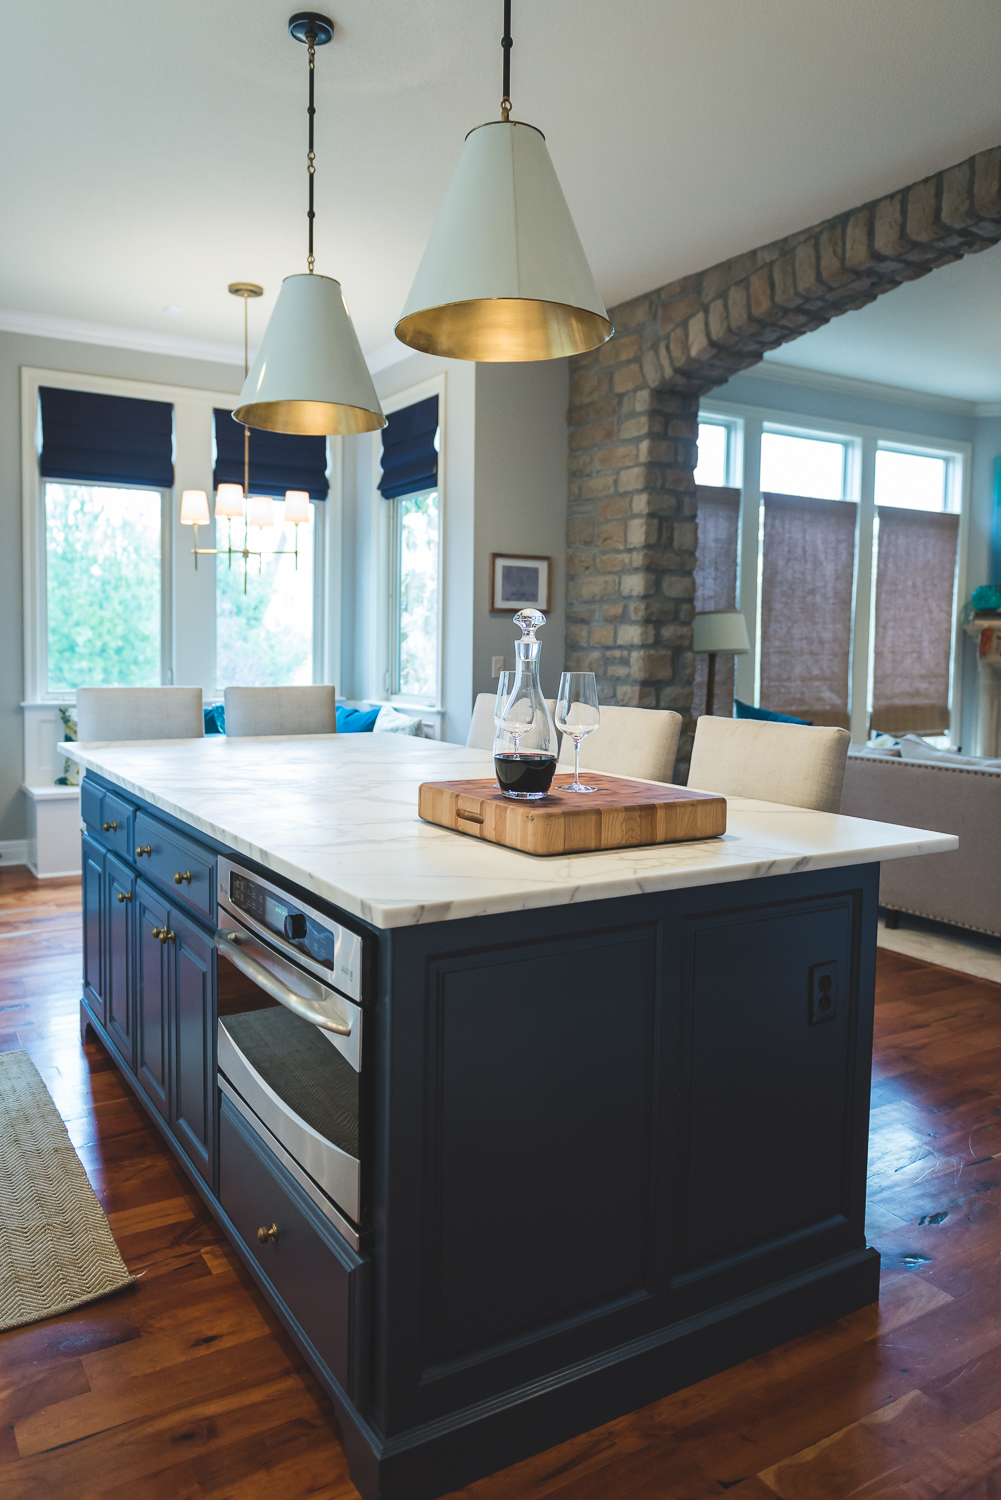 Contrast paient on the island gave us a base to place a marble top which is a showstopper. www.saranobledesigns.com